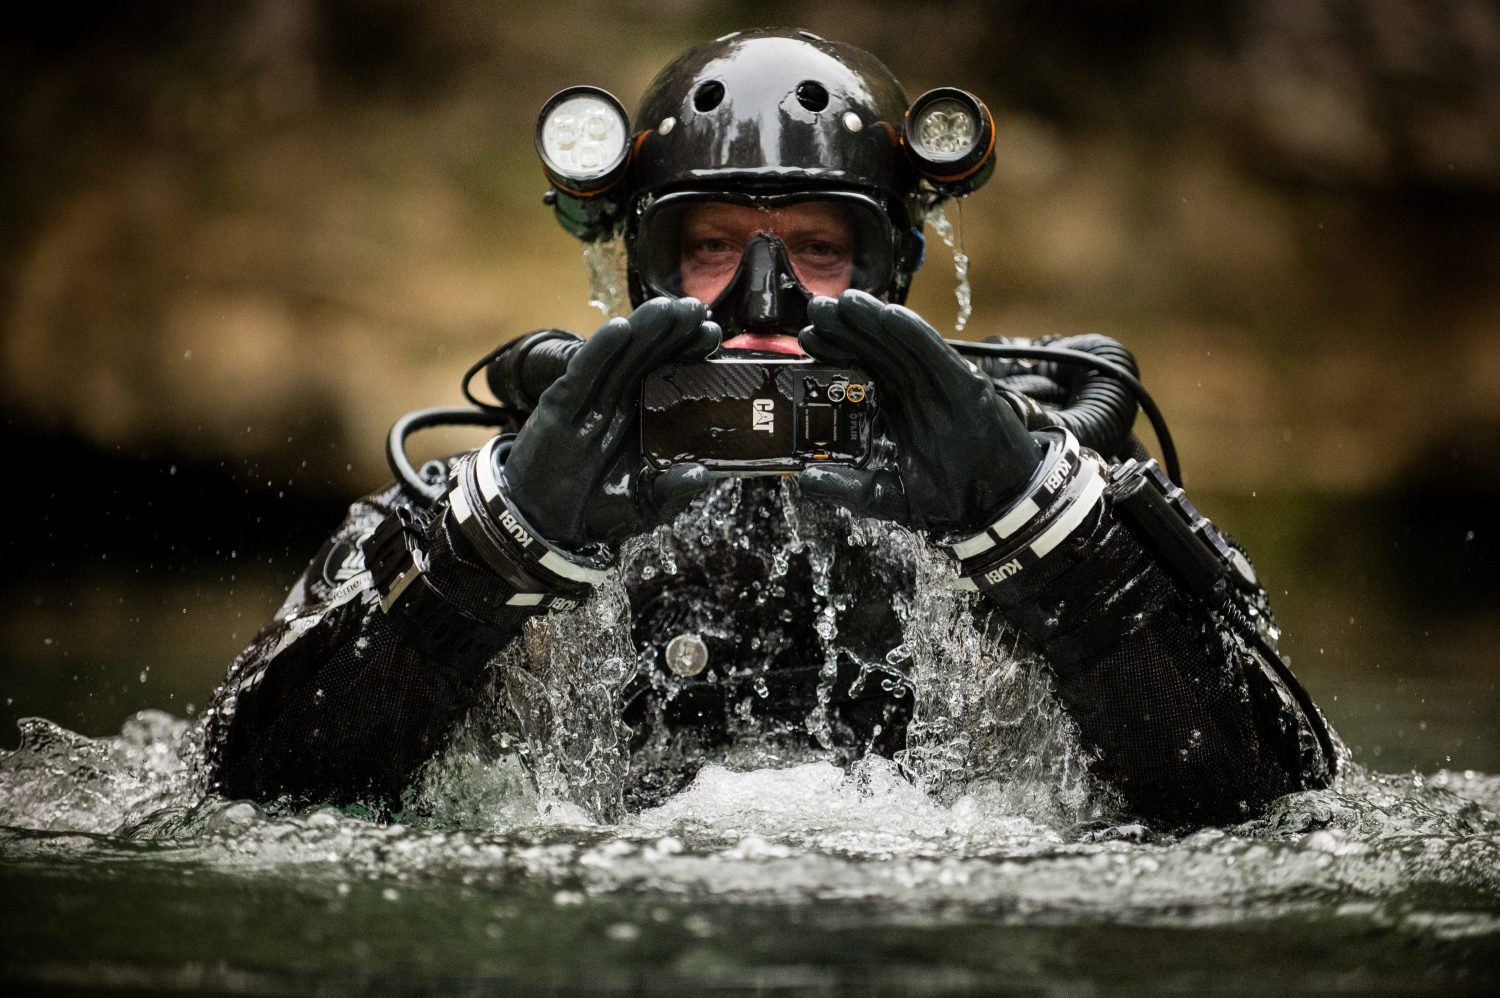 Cave diver Andy Torbett using a Cat S60 to explore the depths